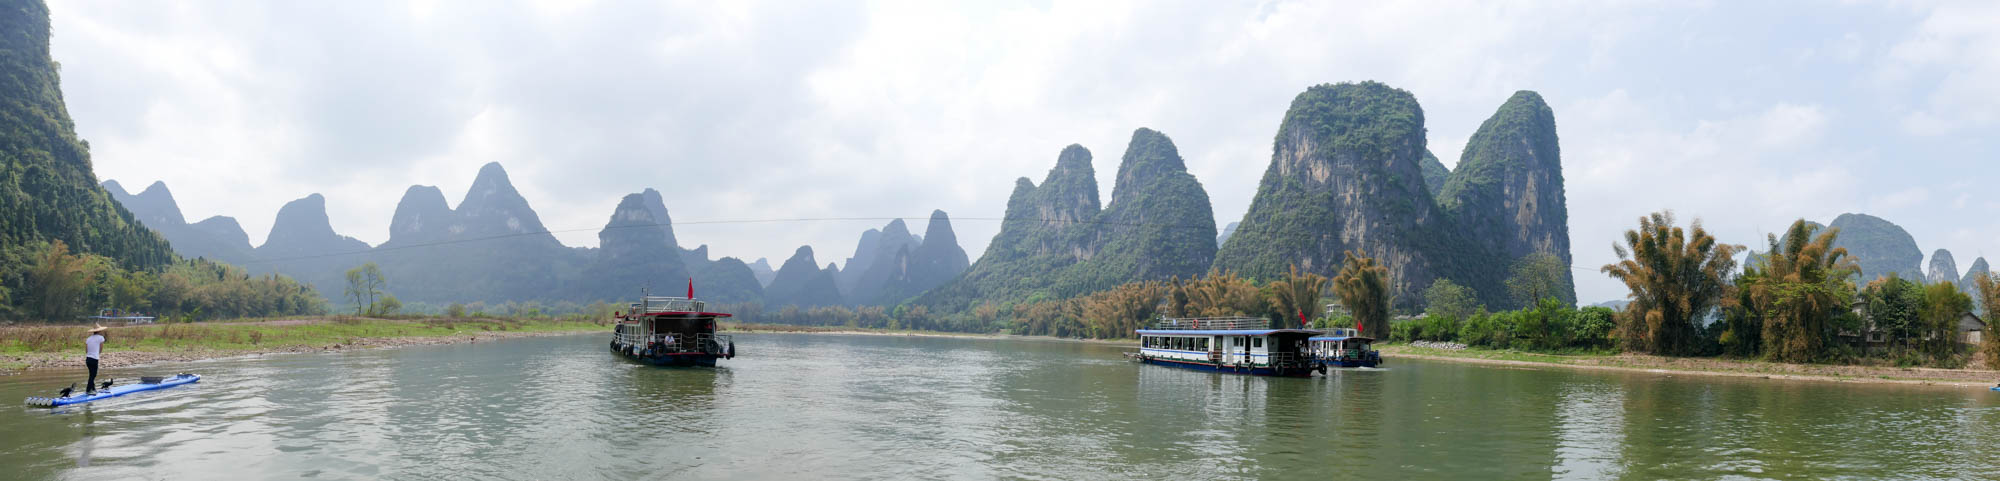 Karsts with tour boats on the Li River.